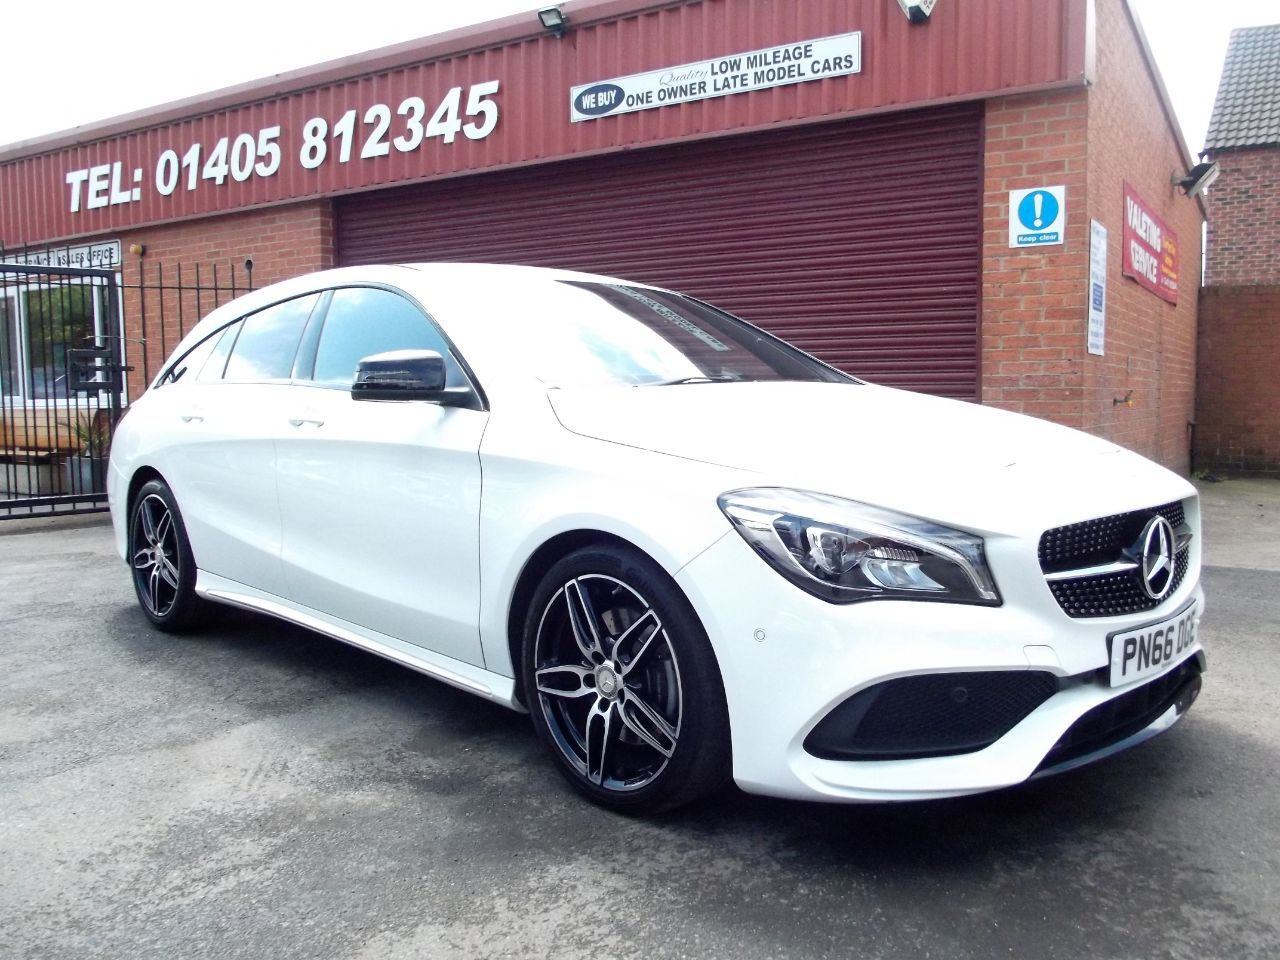 used mercedes benz cla class and second hand mercedes benz cla class in south yorkshire. Black Bedroom Furniture Sets. Home Design Ideas